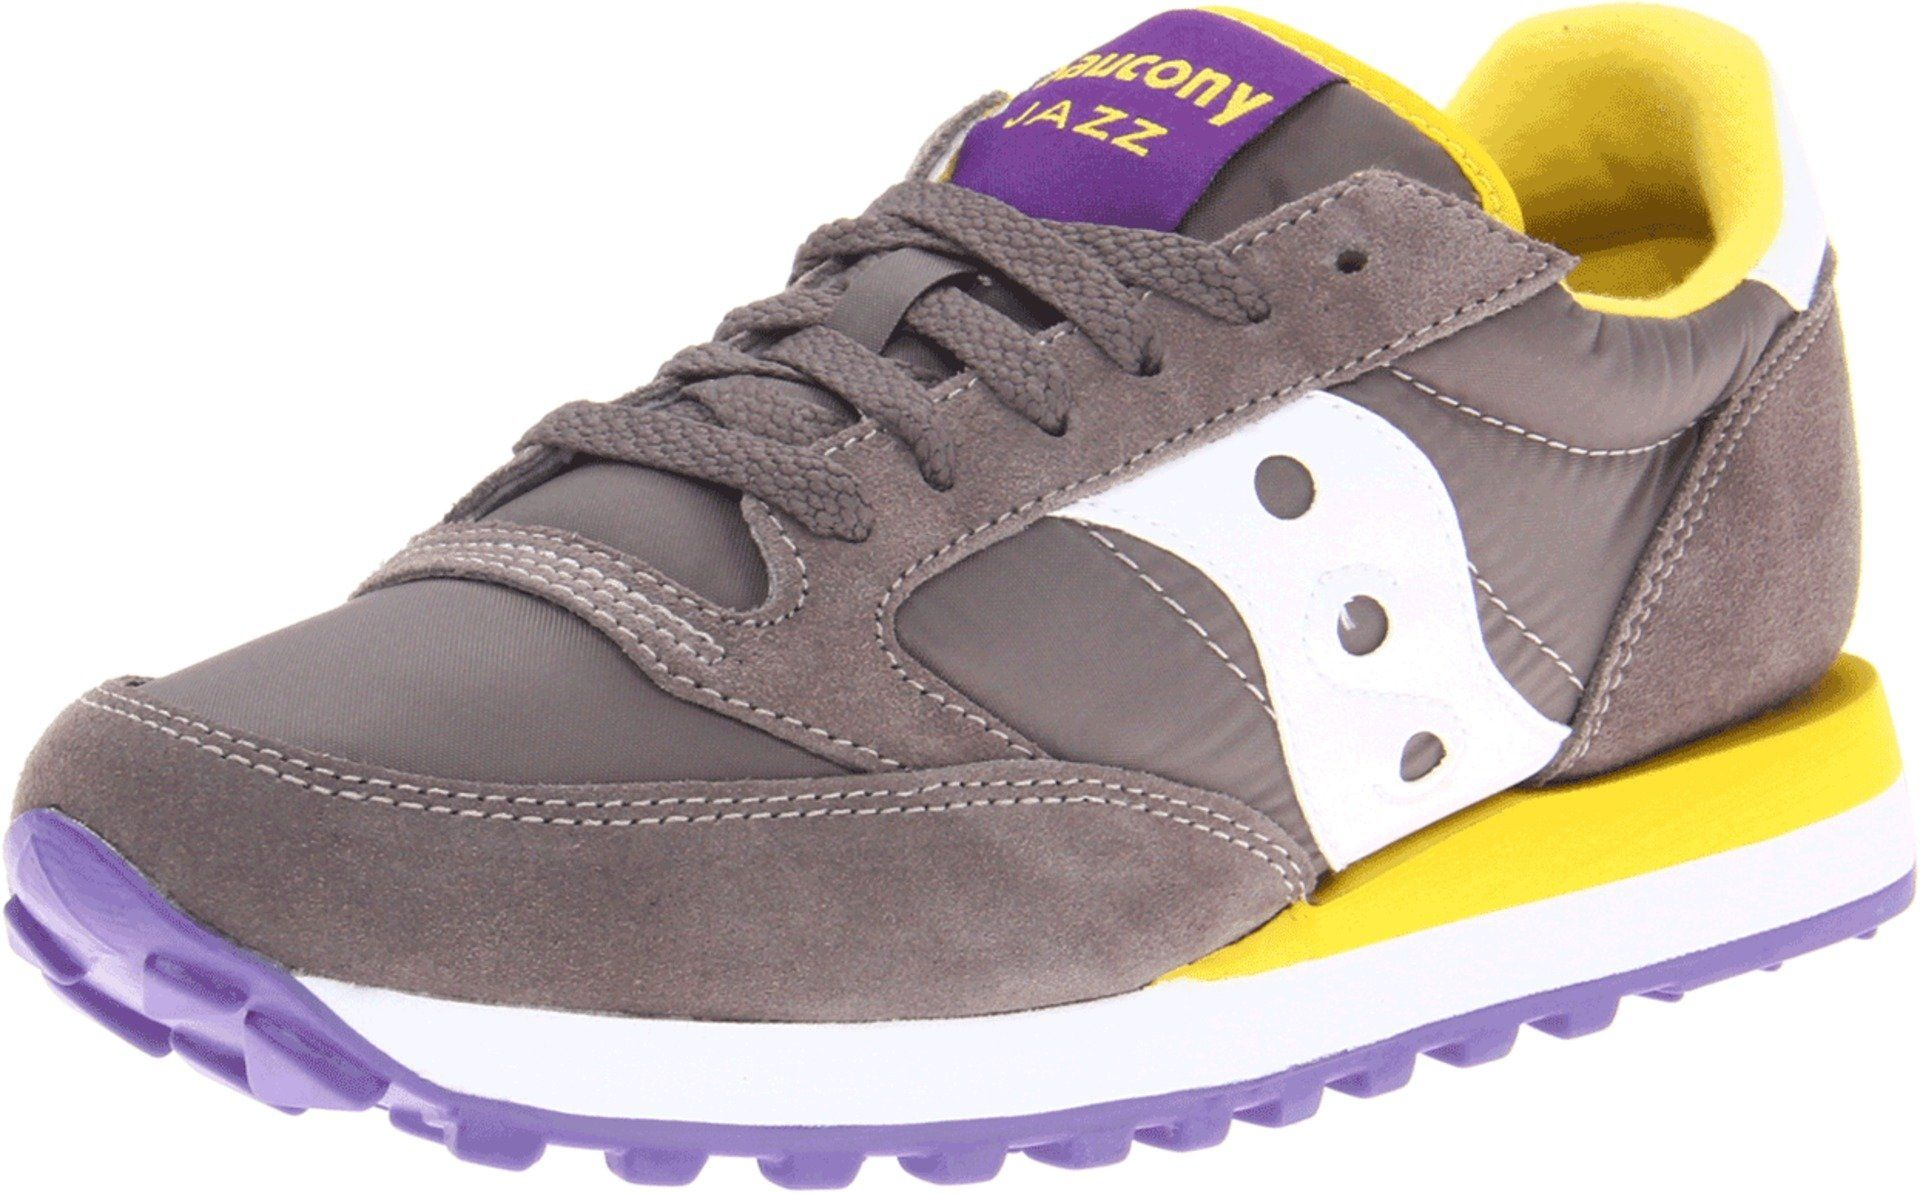 c09deee9d7 SNEAKER SAUCONY JAZZ ORIGINAL GRIGIO/VIOLA/GIALLO: Amazon.it: Scarpe ...